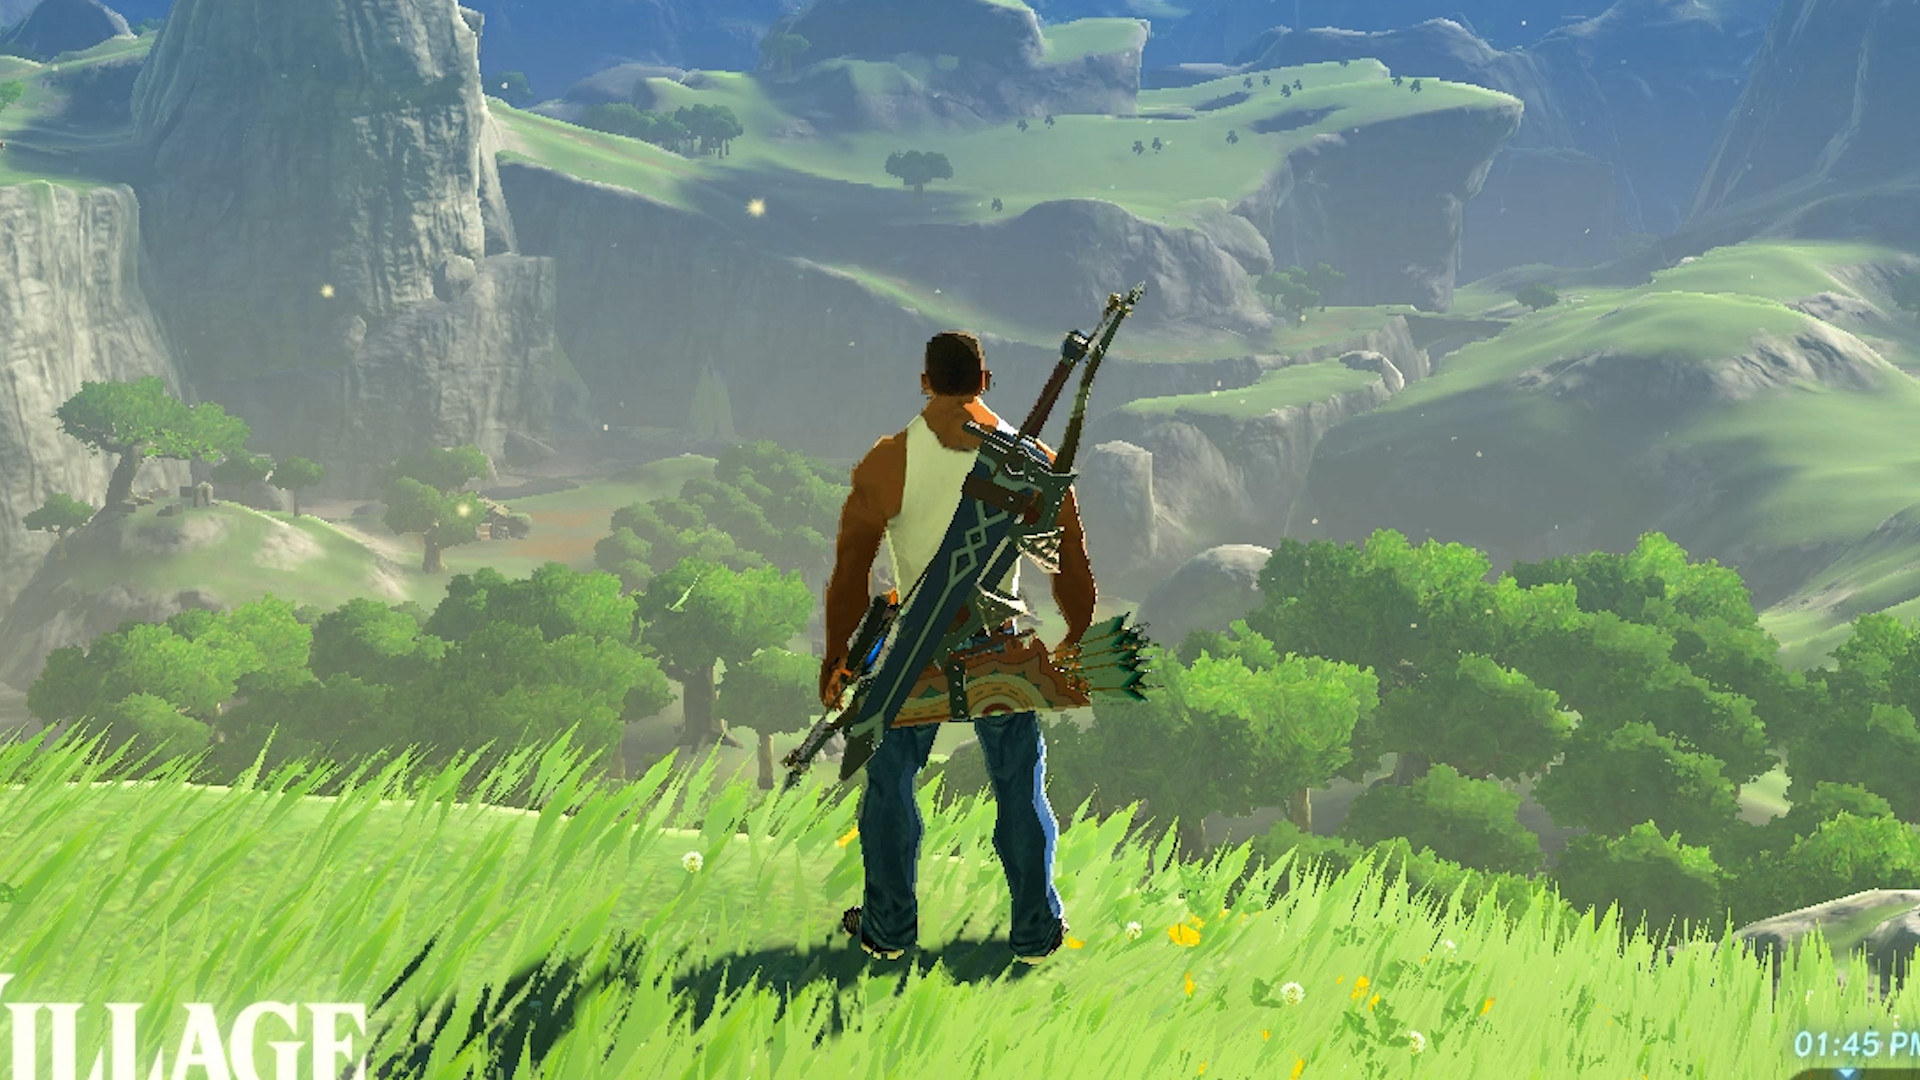 One thing emulated Zelda: Breath of the Wild lets you do that the